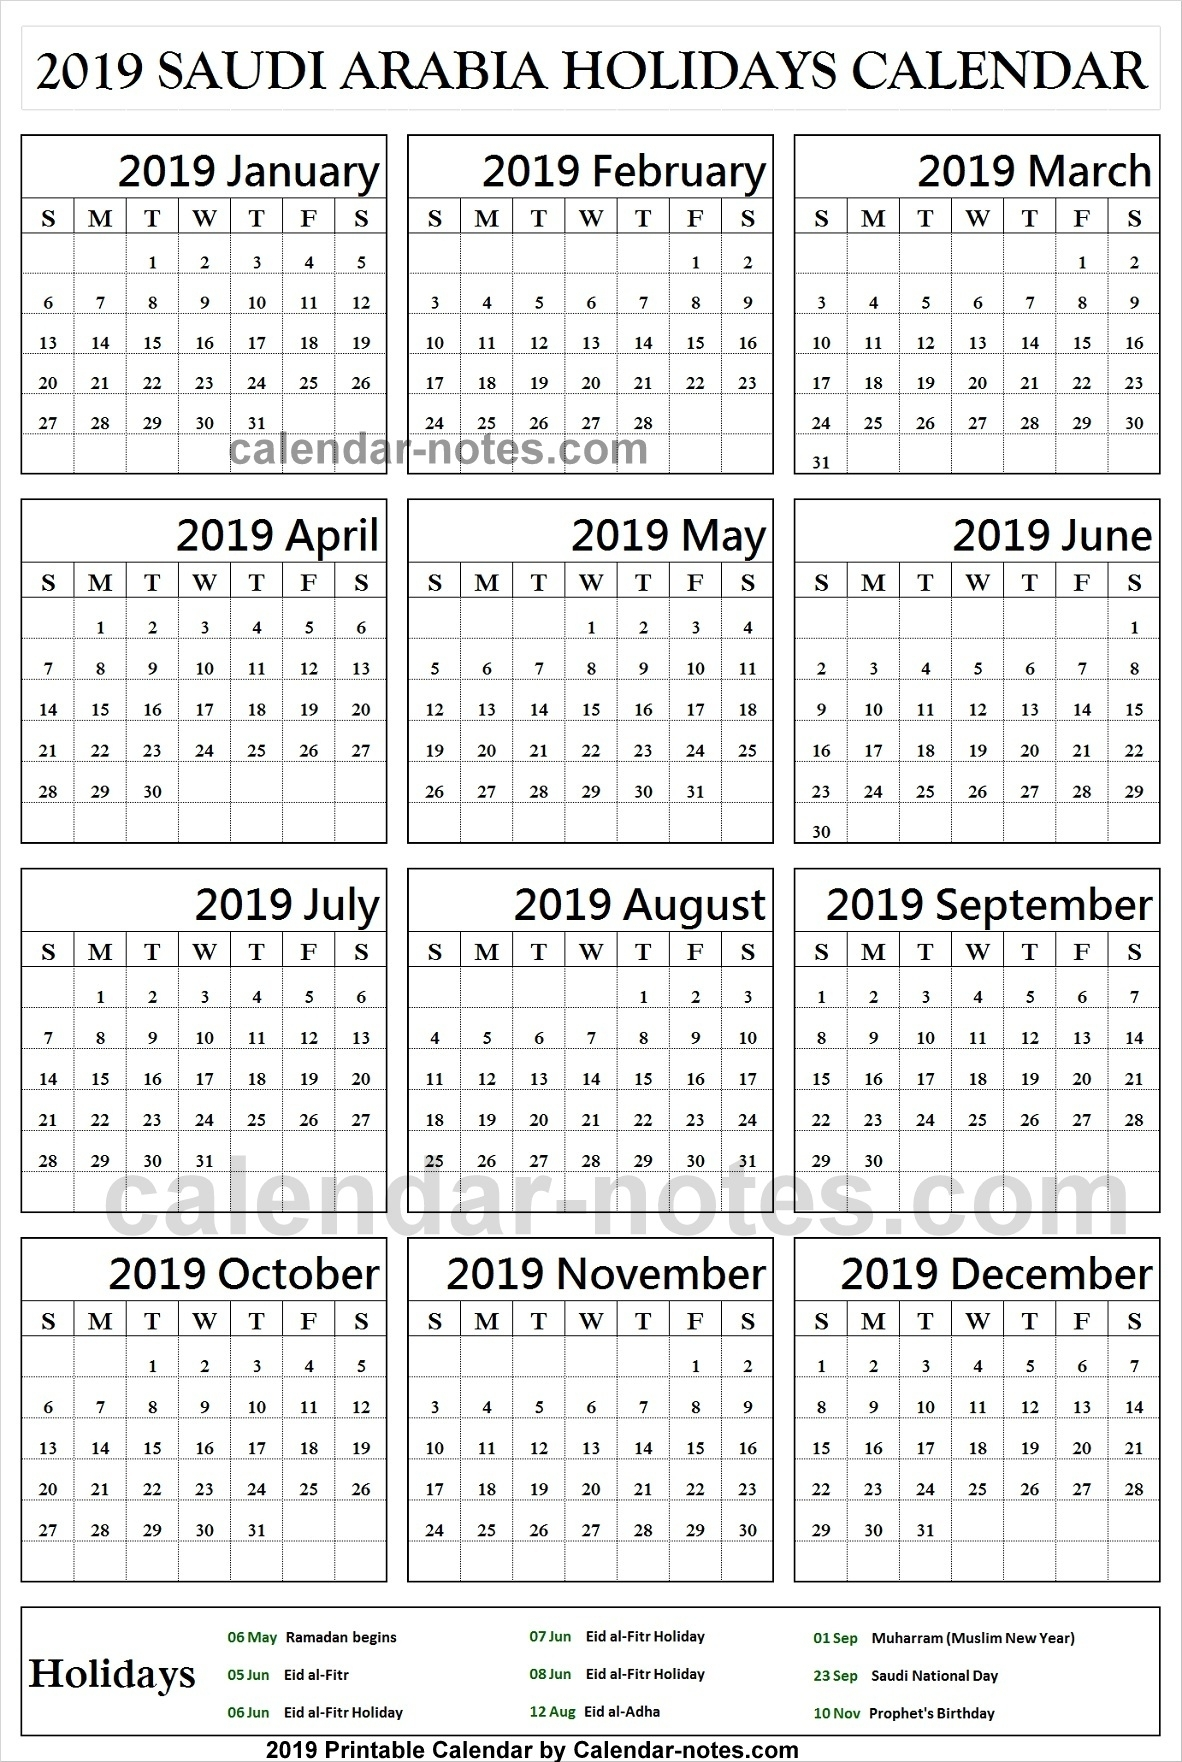 Saudi Arabia Holiday 2019 Calendar Archives - Calendar With Notes inside Calendar Of Ramadan In Saudi Arabia